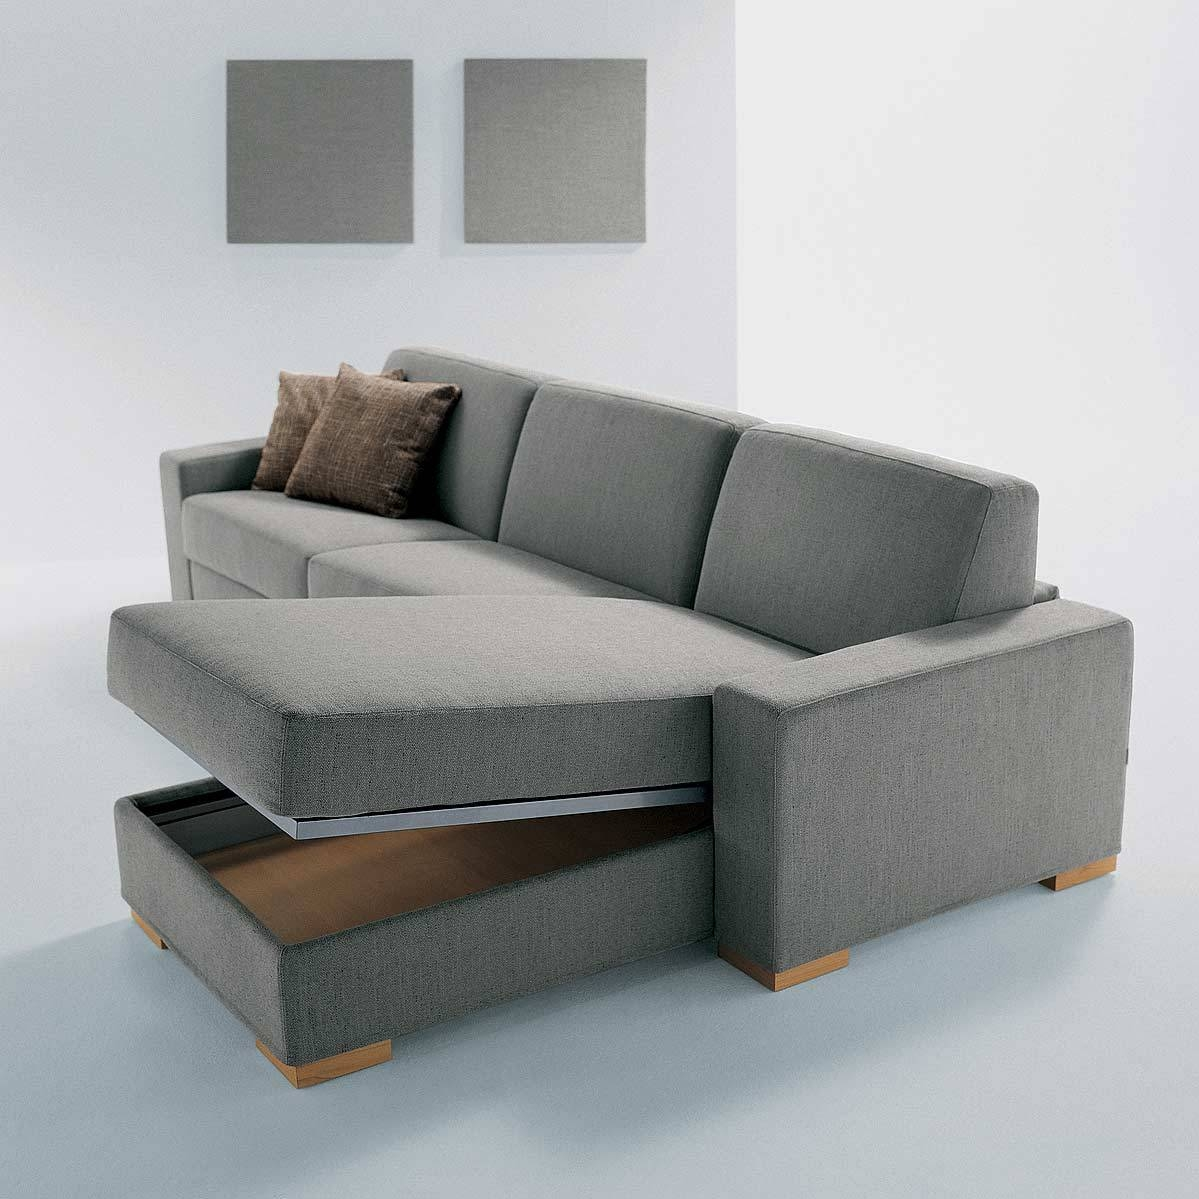 Sky Fabric Corner Sofa Bed With Storage In Truffle | Nrtradiant Regarding Sofa Beds With Storage Underneath (View 3 of 15)